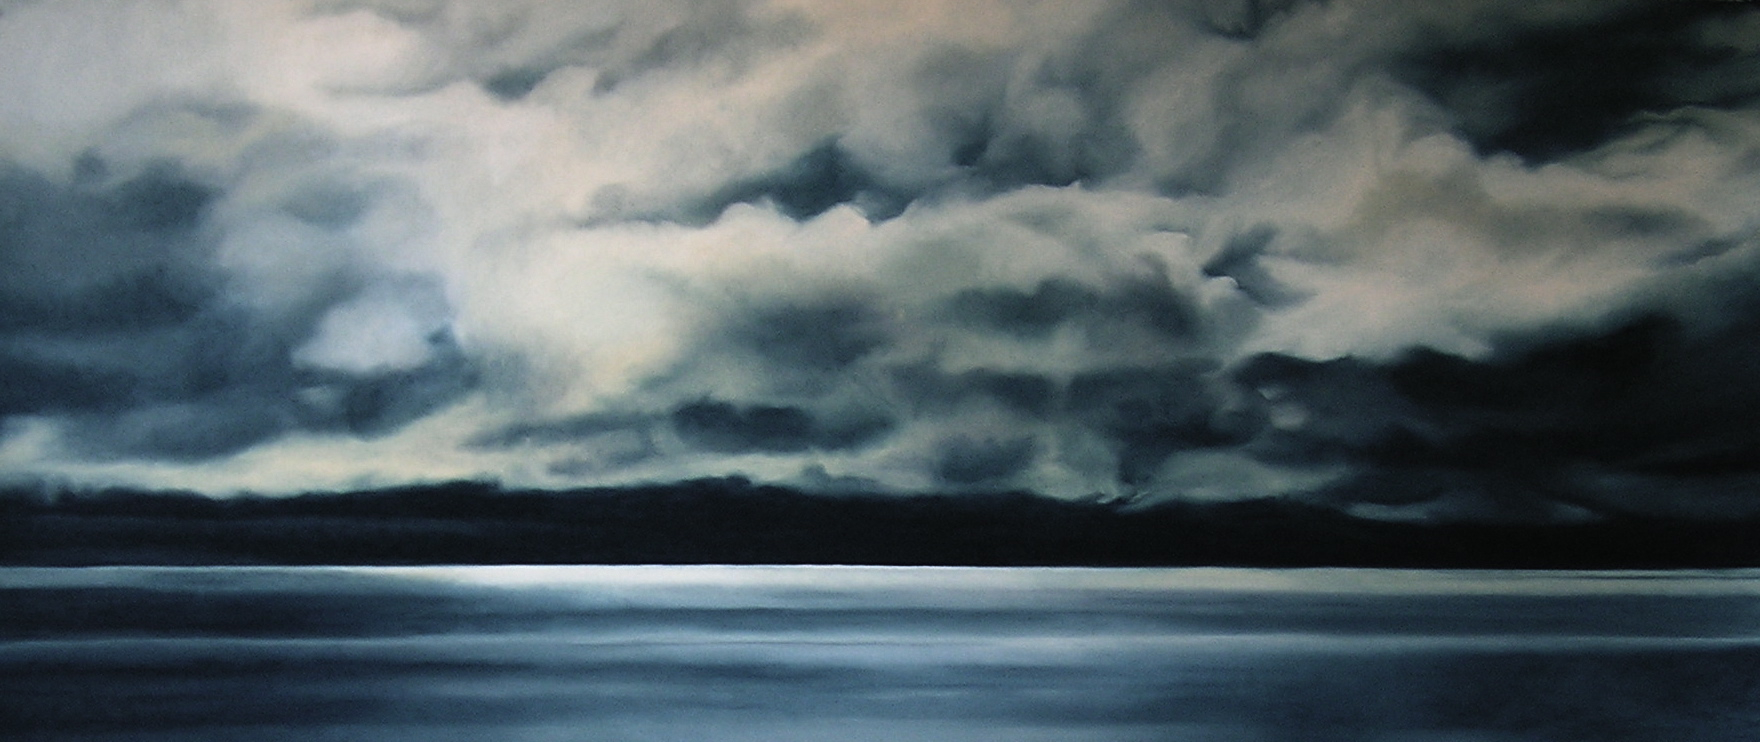 "Greenland #21A,    Zaria Forman.  26"" x 66"", soft pastel on paper"